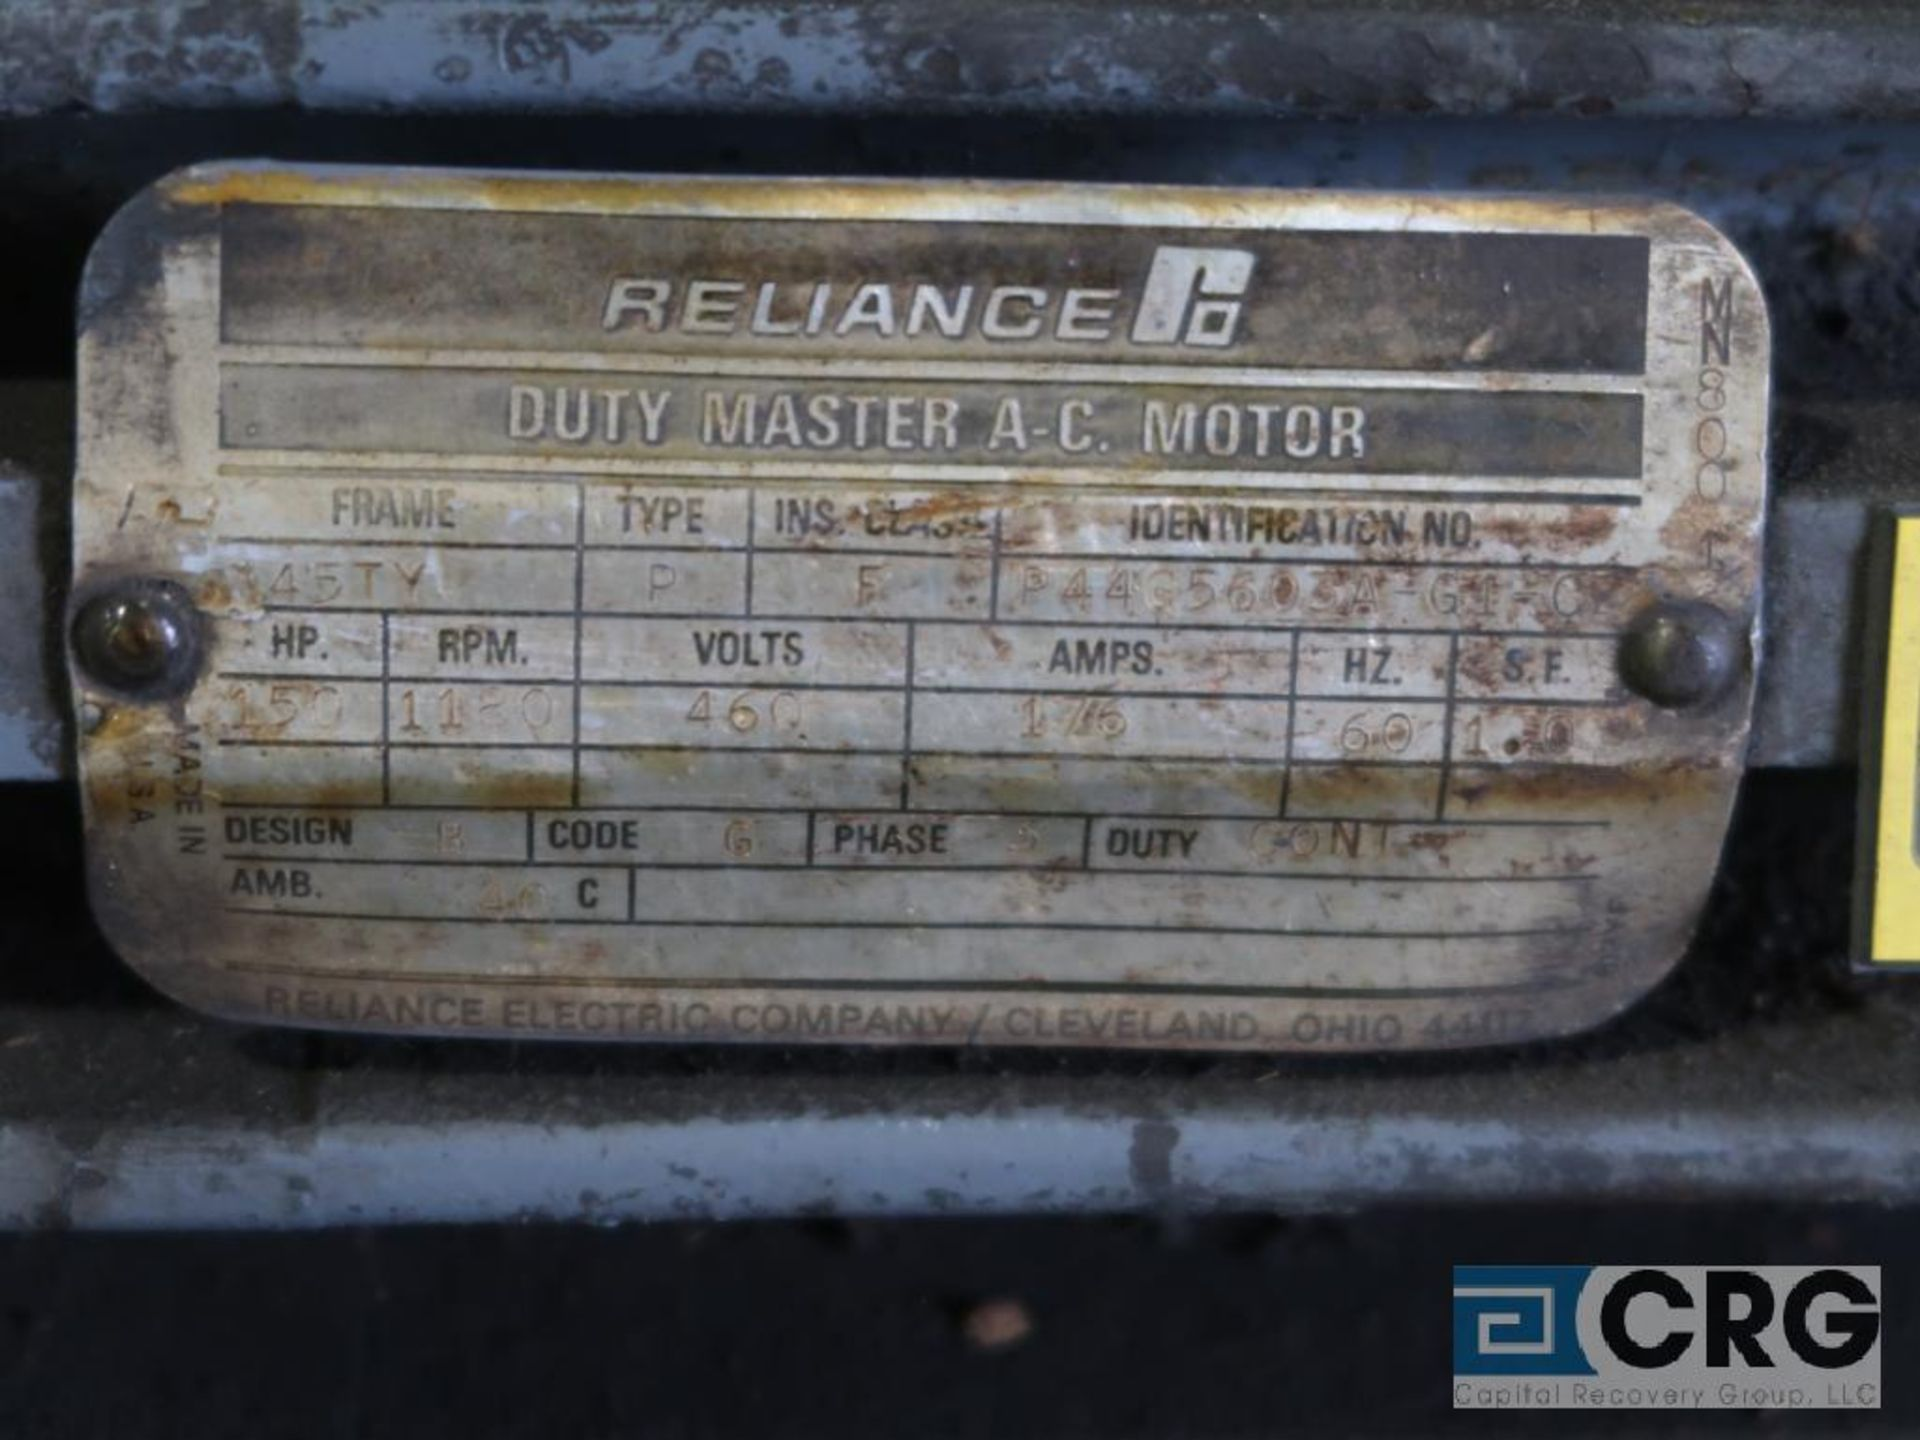 Reliance Duty Master A-C motor, 150 HP, 1,180 RPMs, 460 volt, 3 ph., 445TY frame (Finish Building) - Image 2 of 2